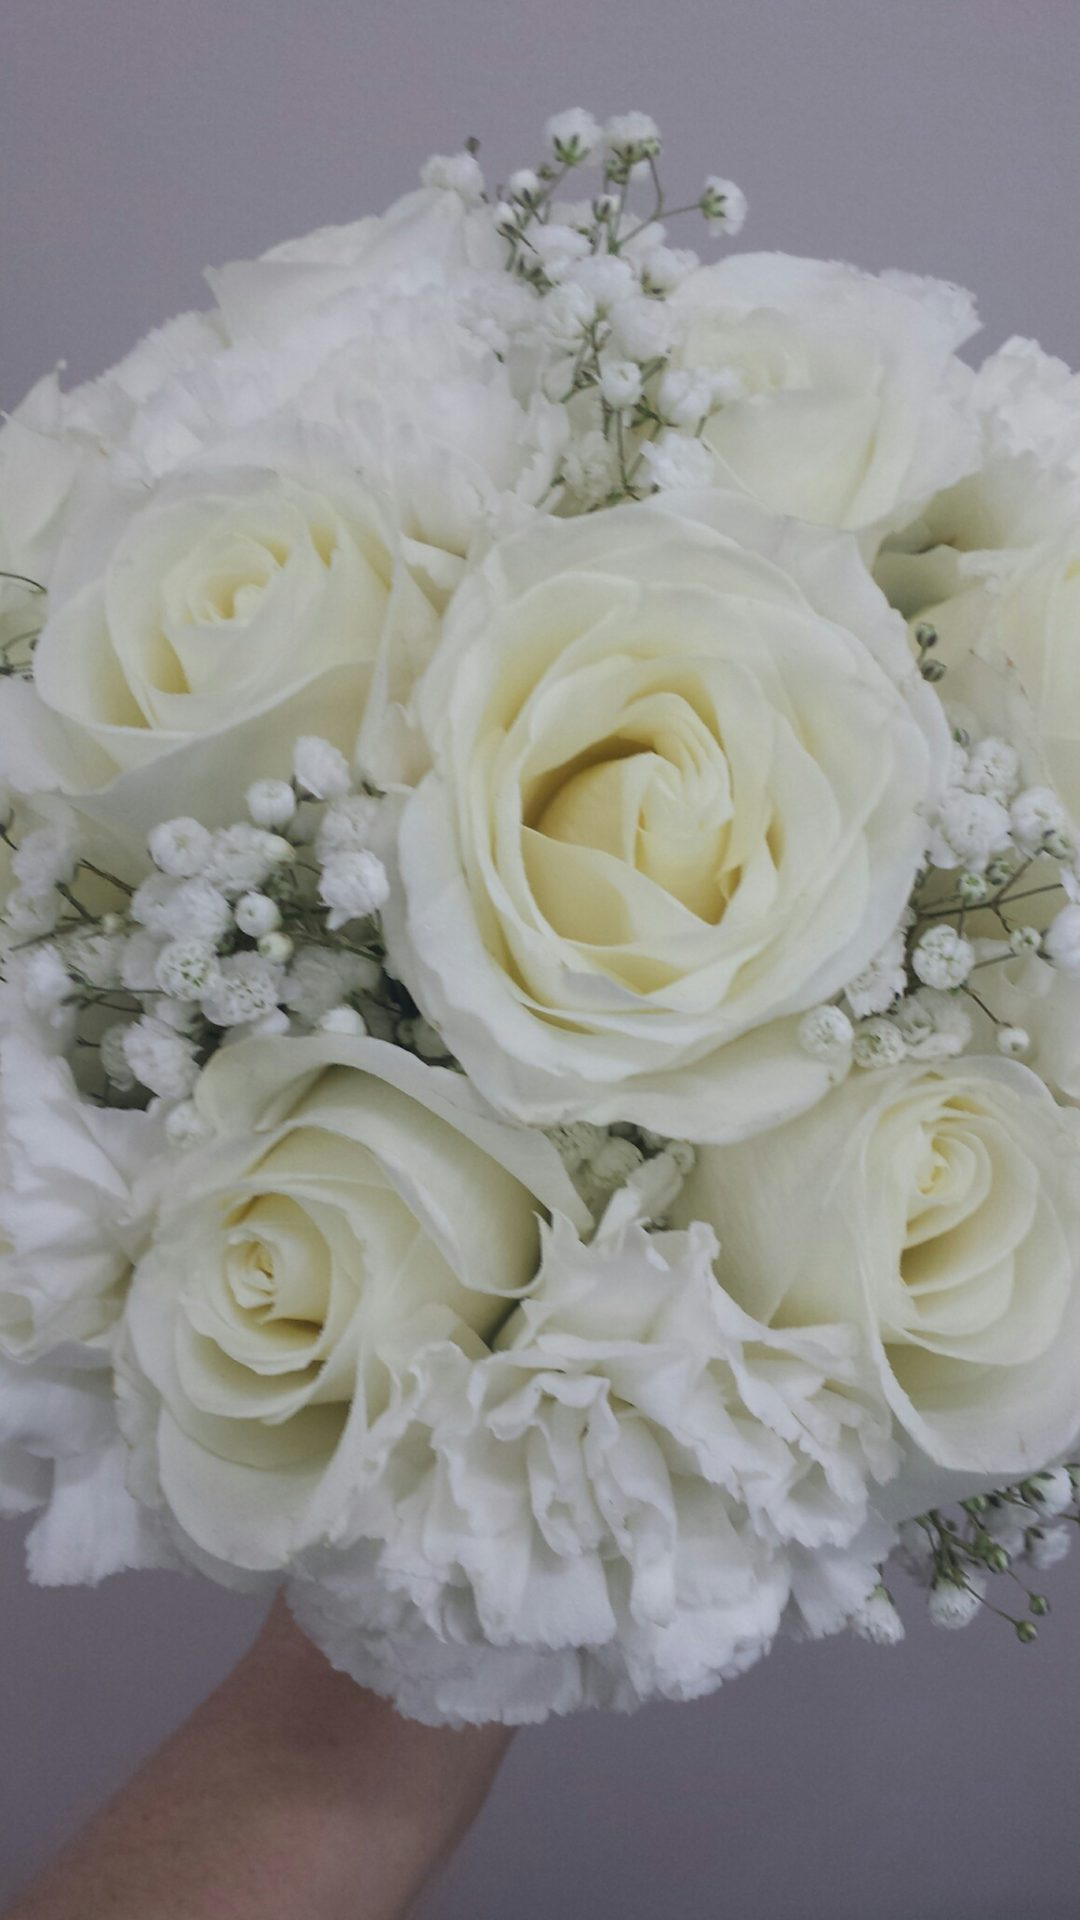 White roses, carnations and Babies breath